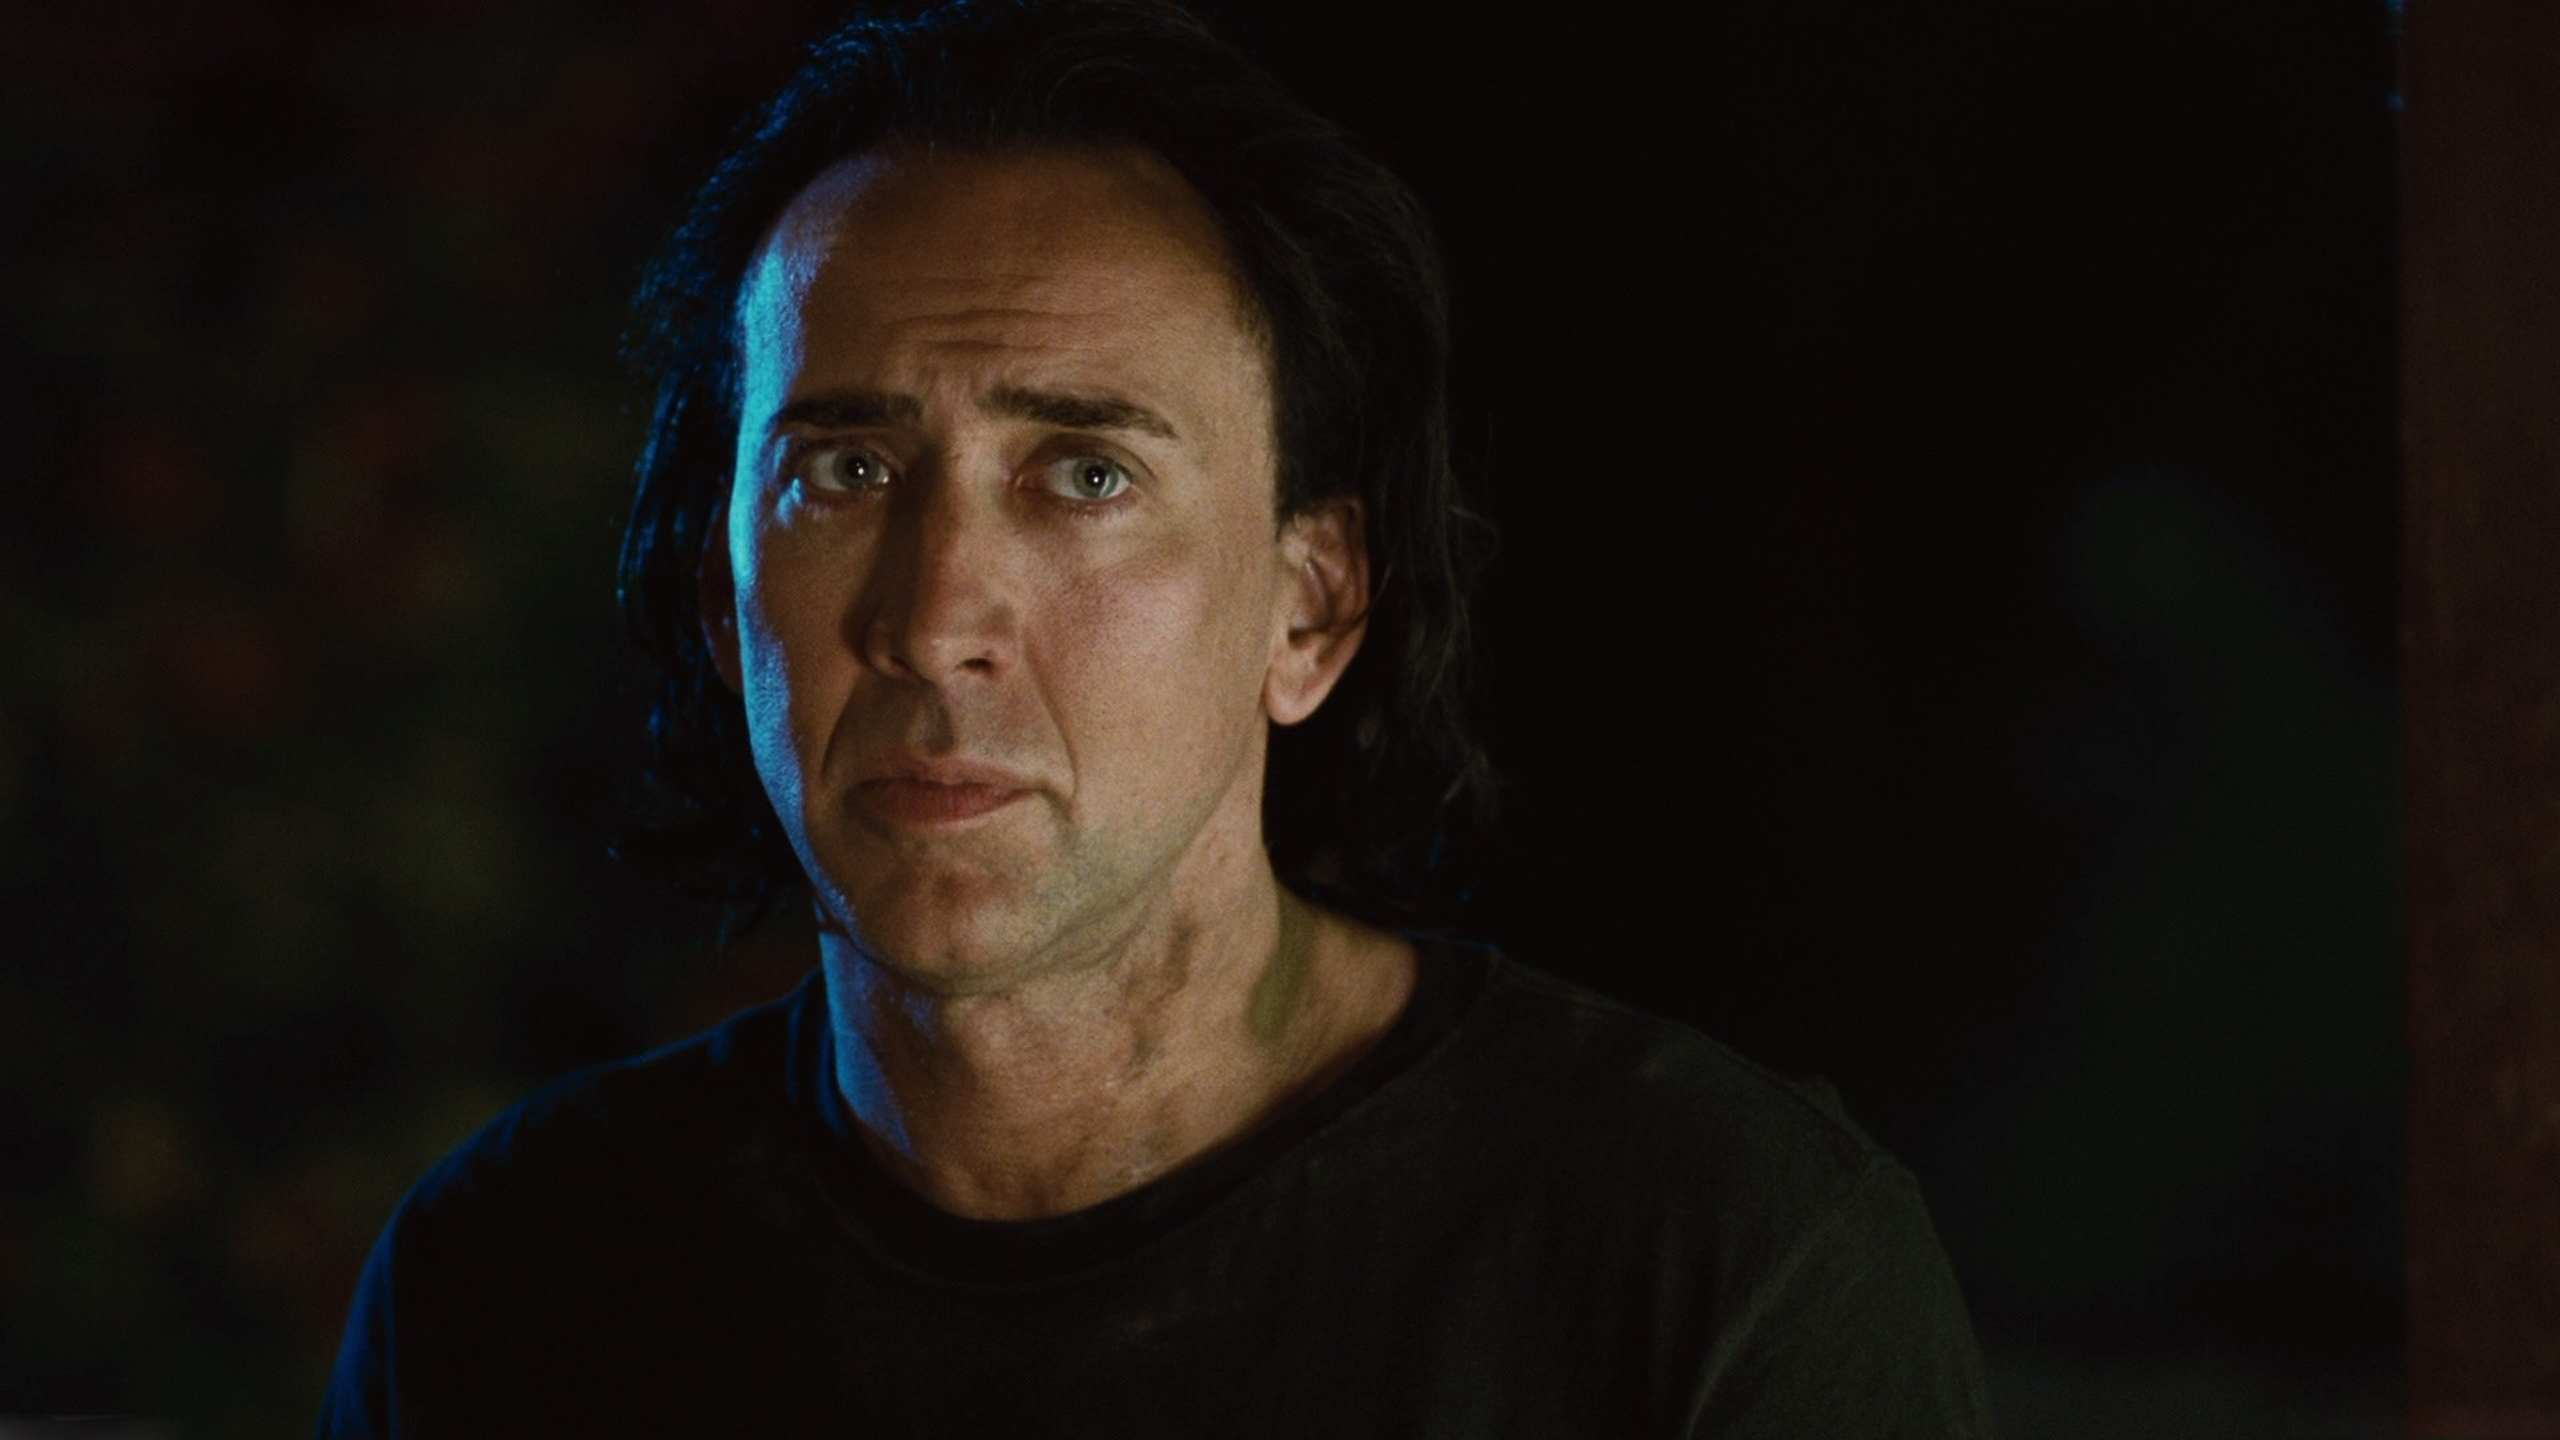 Nicolas Cage Wallpapers High Resolution and Quality Download 2560x1440